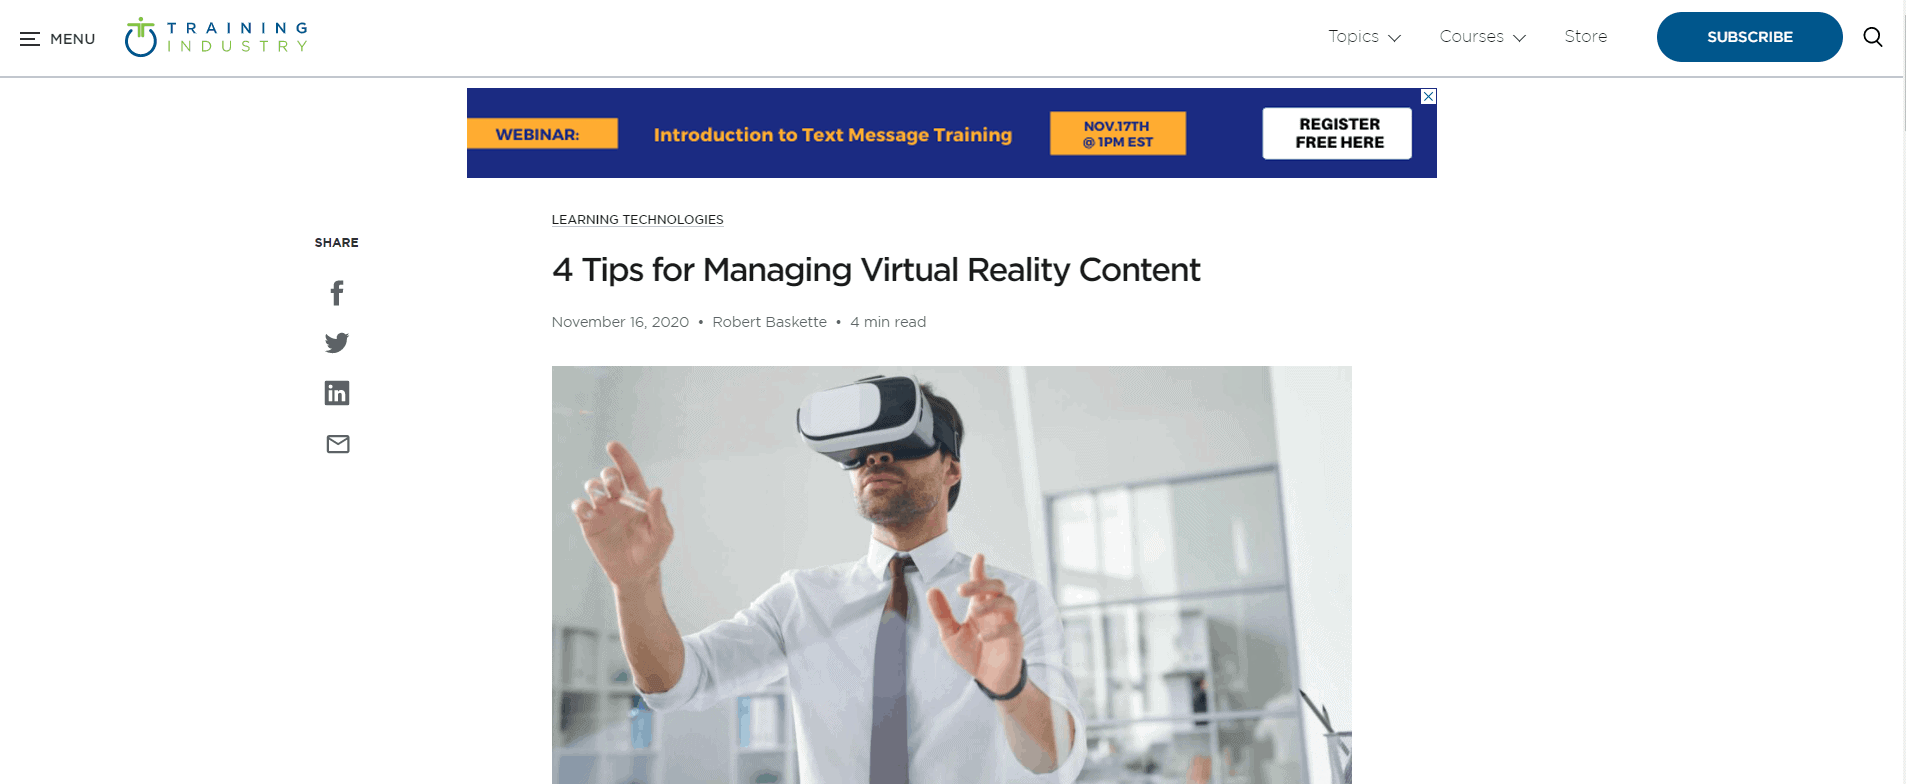 4 Tips for Managing Virtual Reality Content